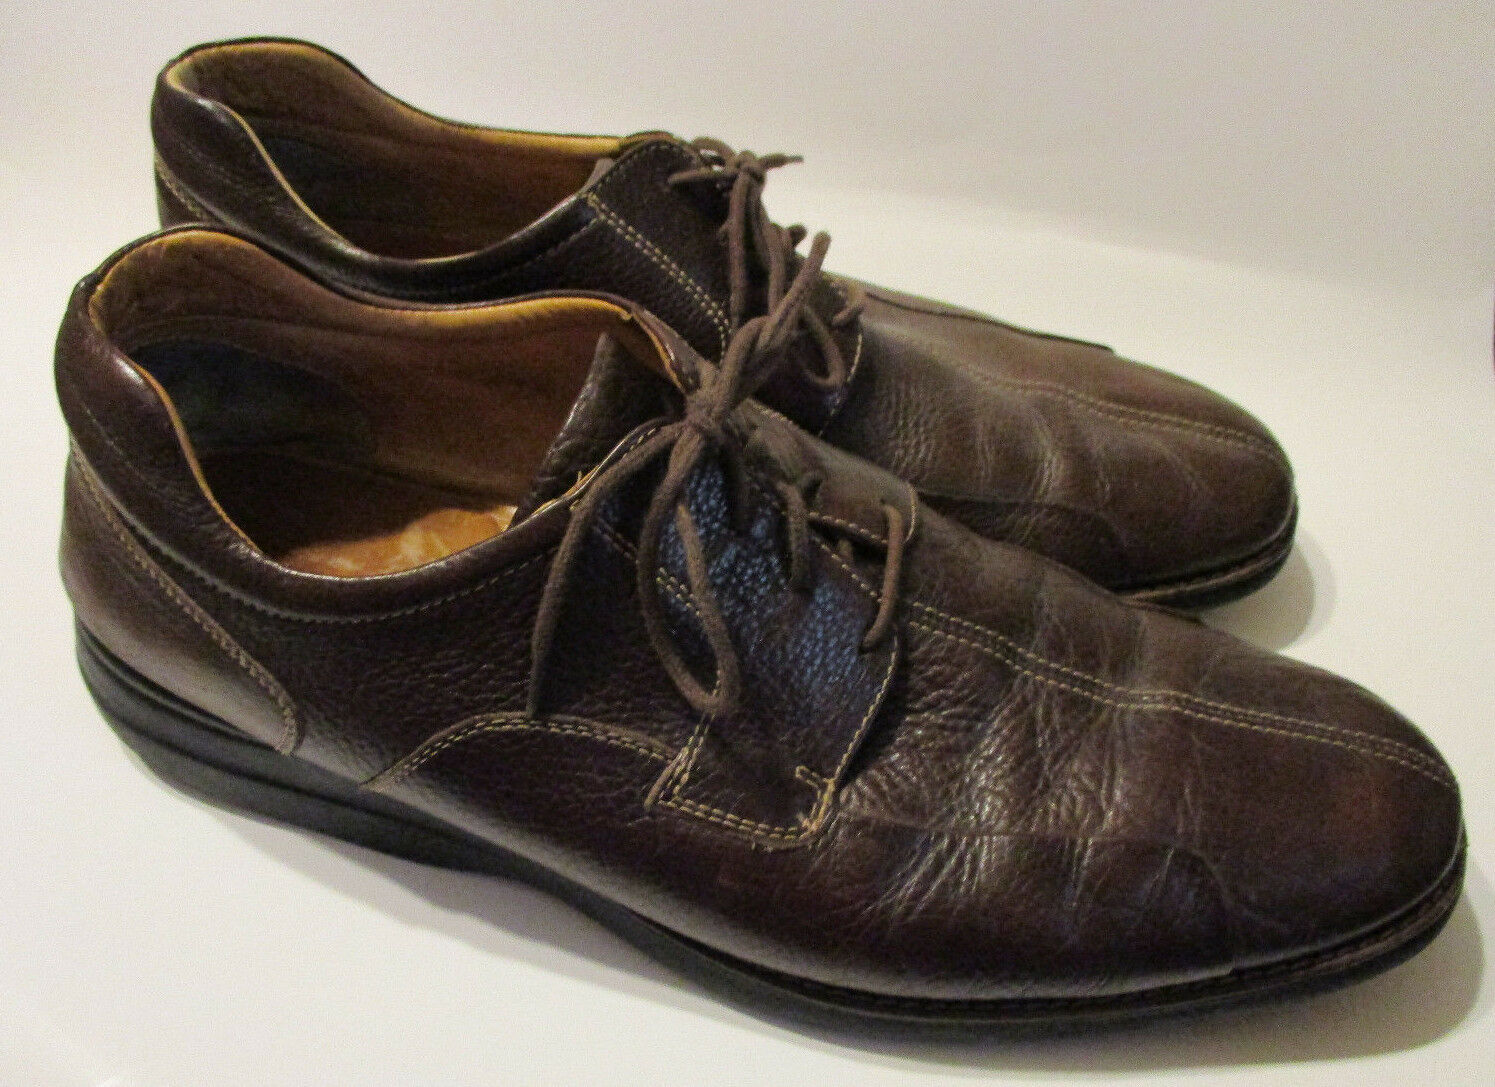 16 W Johnston Murphy Oxfords shoes Shuler Bicycle Toe Brown Leather 20-7223 Wide